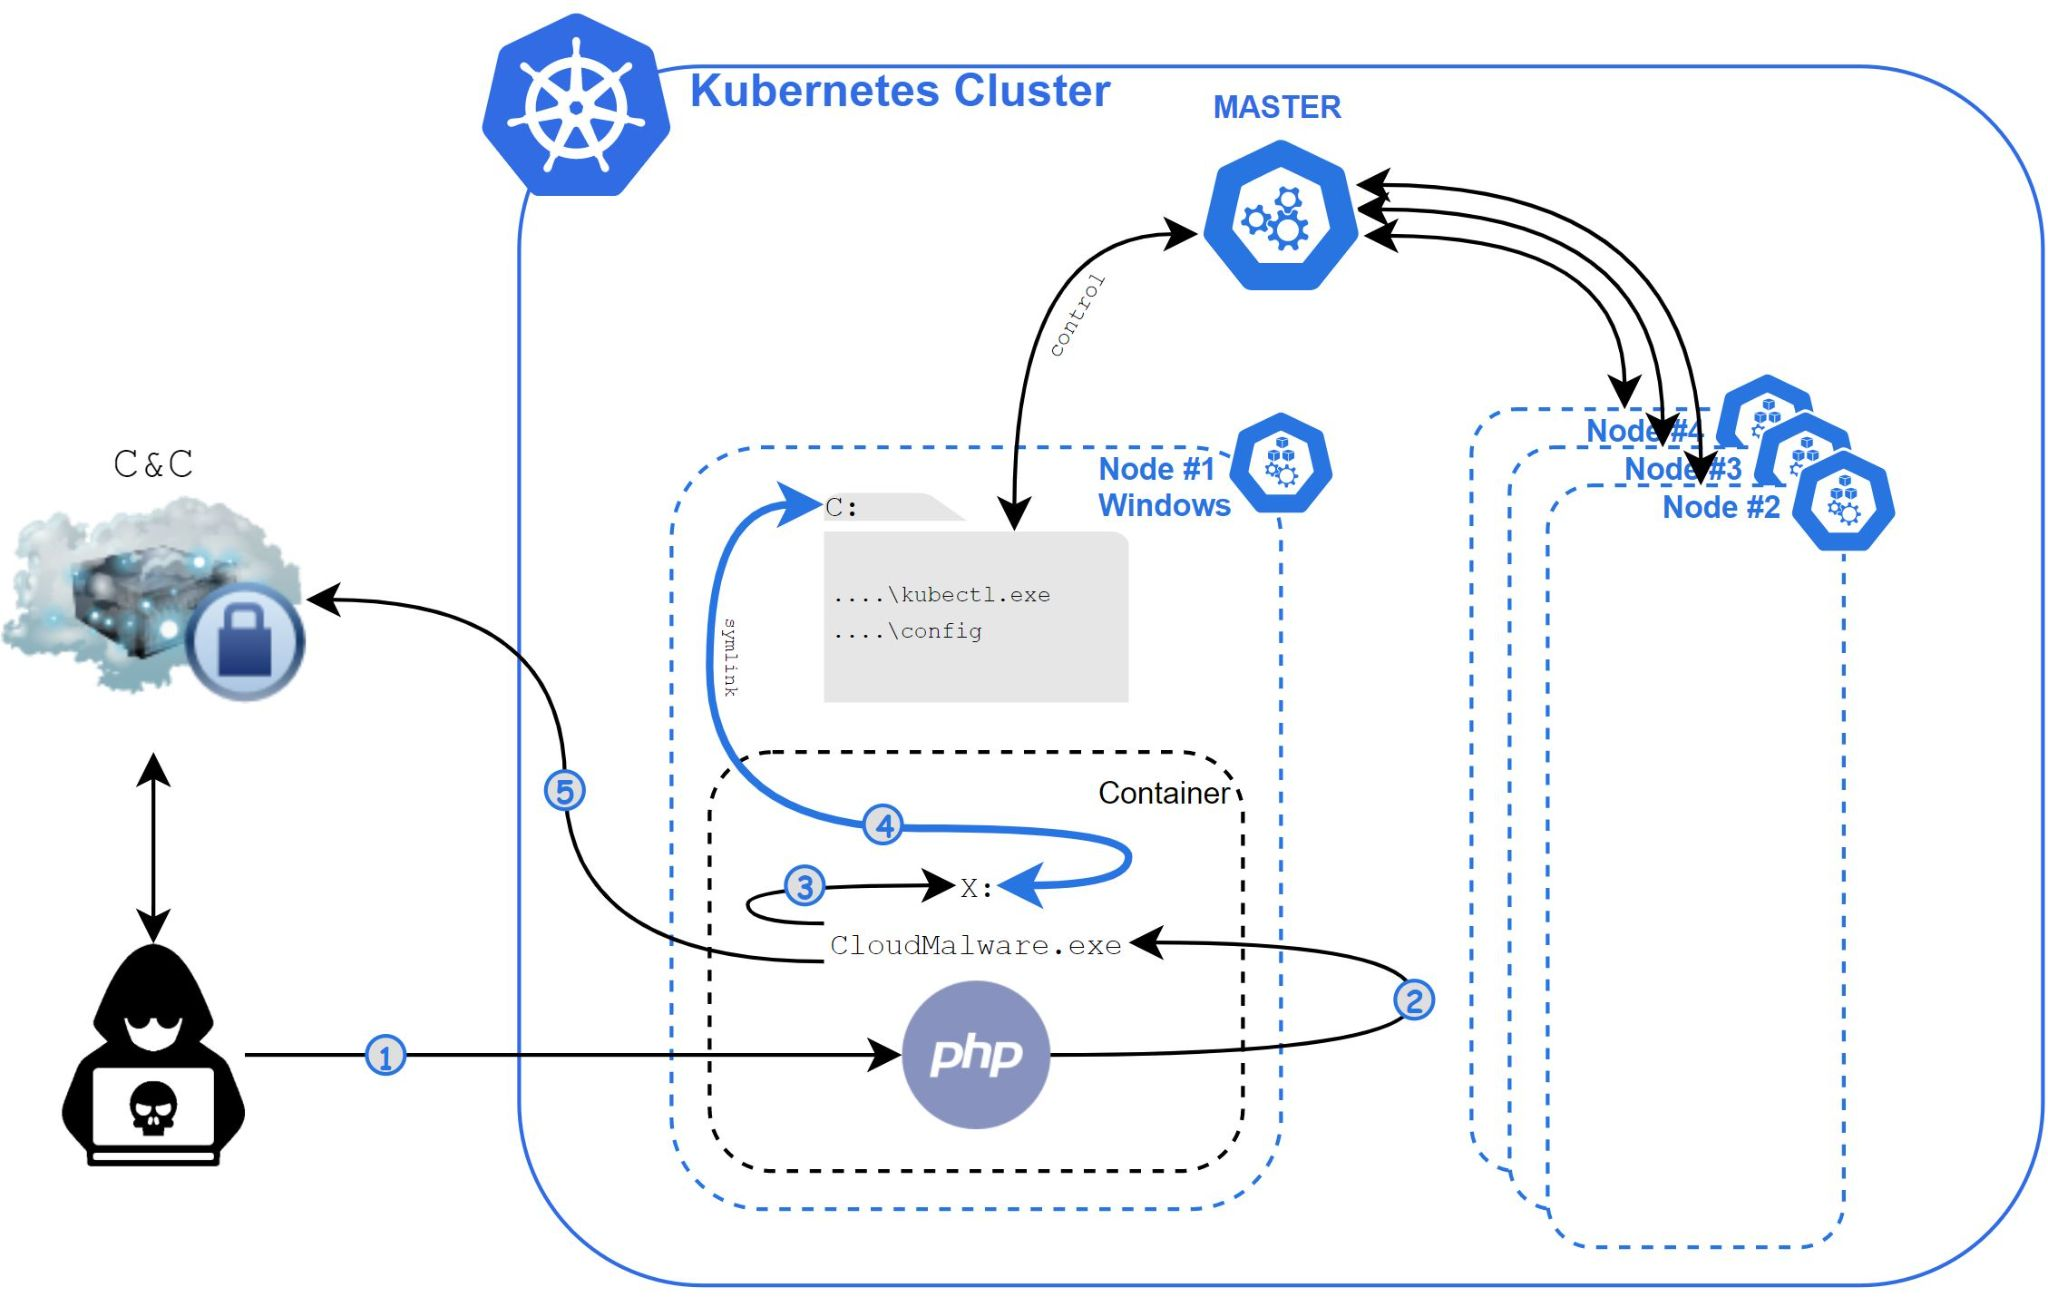 The diagram shows the steps taken as Siloscape executes, running through a Windows container to open a back door to a Kubernetes cluster.